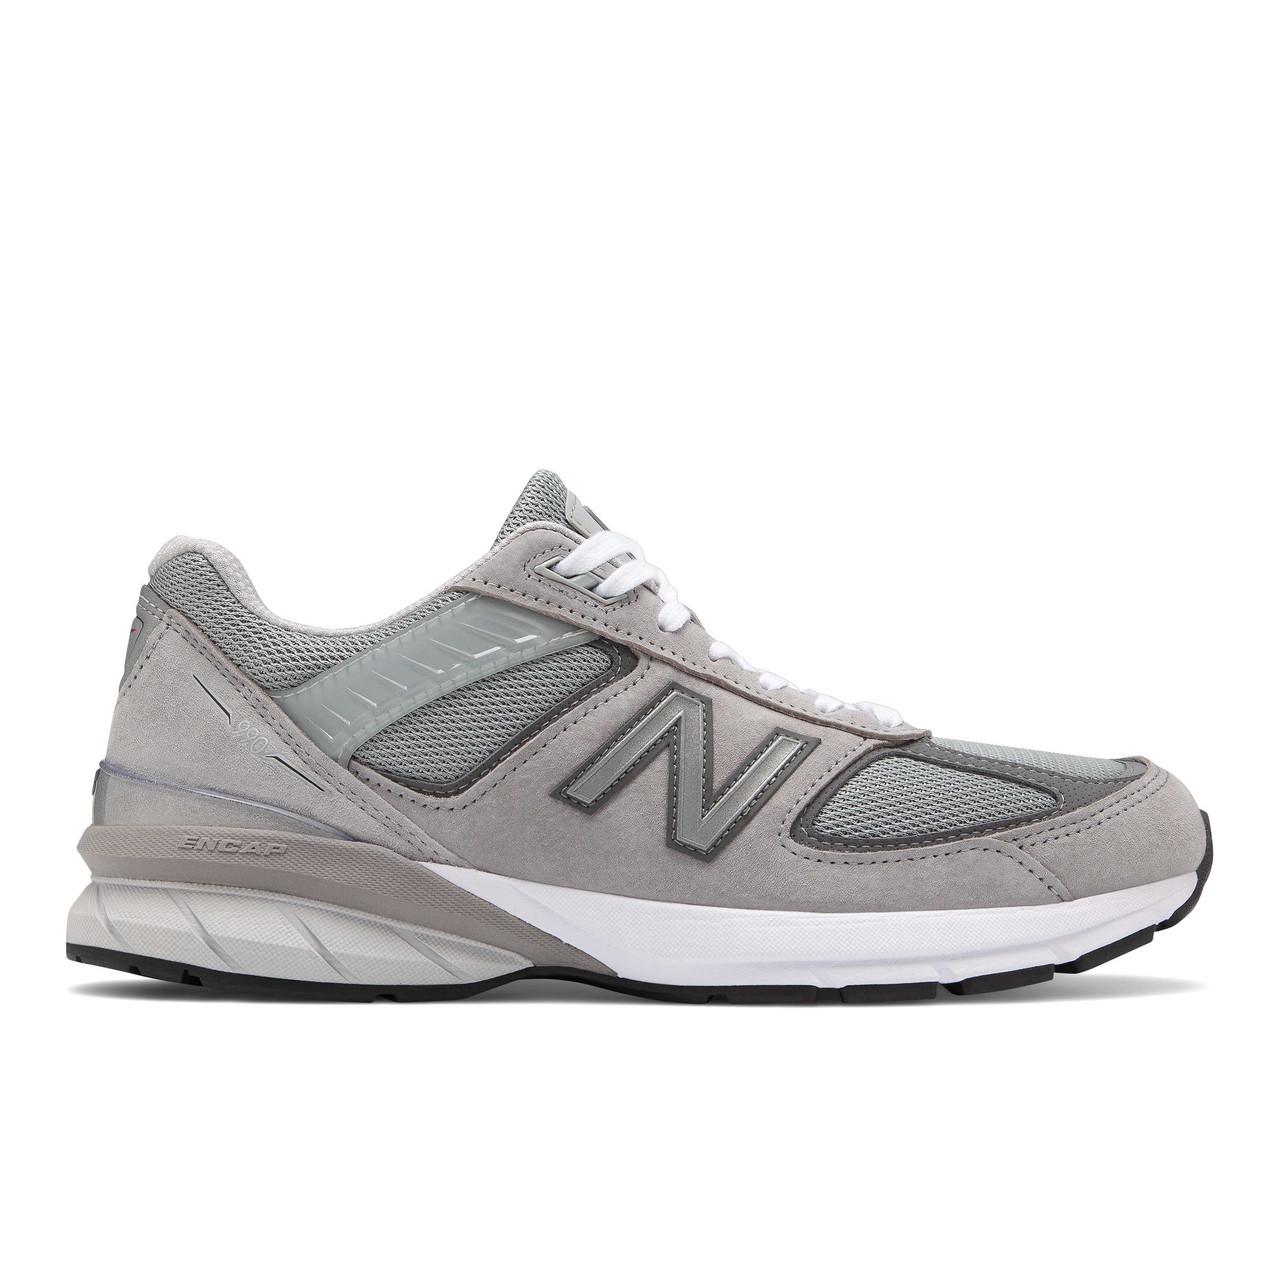 premium selection f1e16 95067 New Balance Men s M990 Version 5 in Gray. Premium Motion Control ...